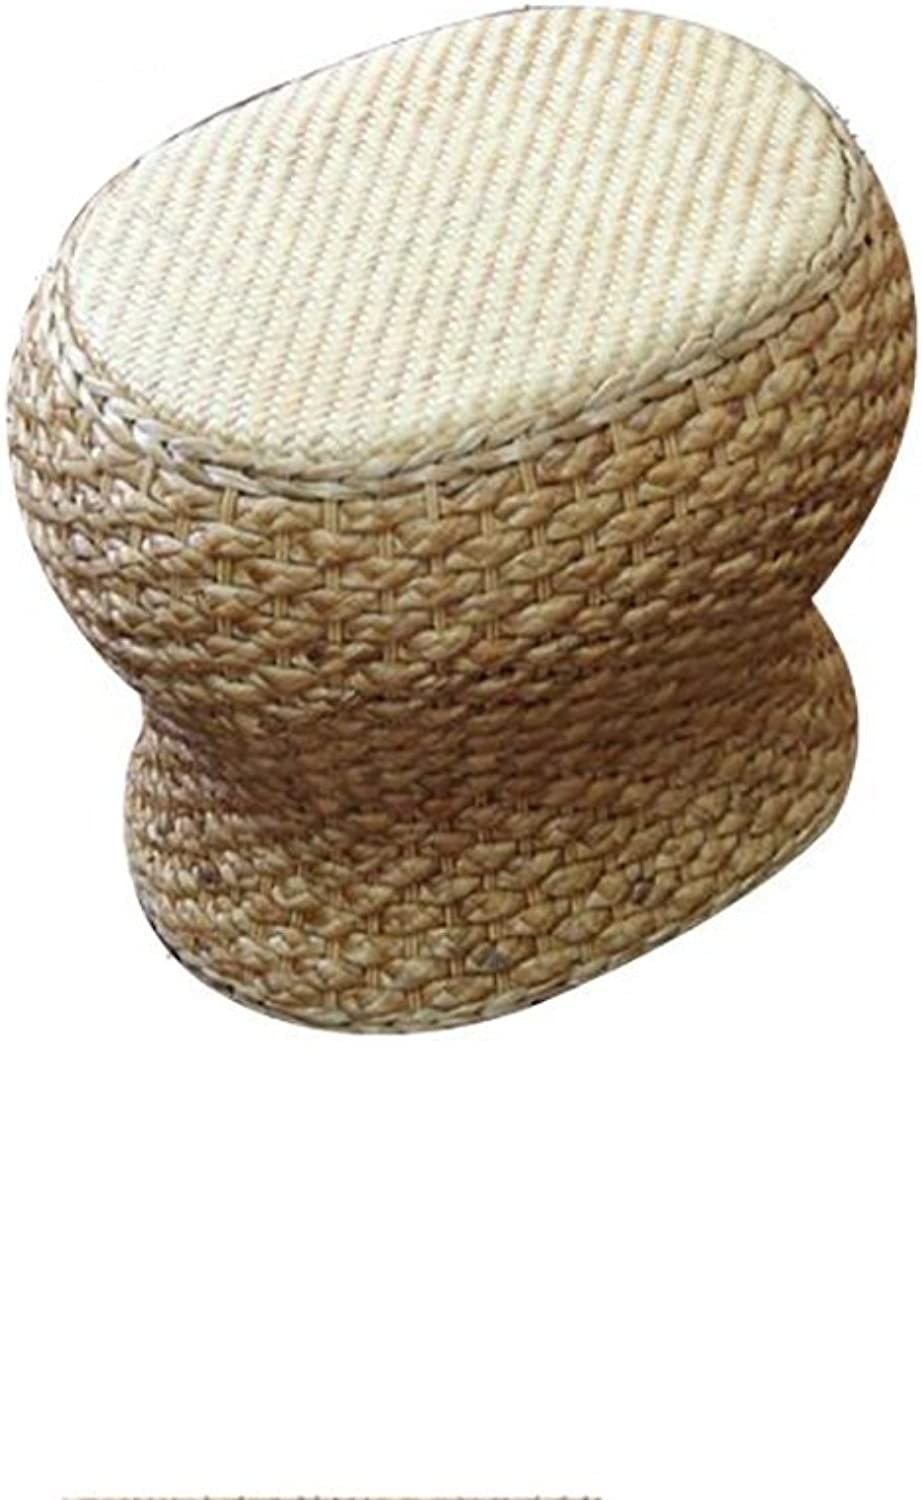 LXP Footstool Stool Hand-Woven Rattan Stool Oval Thick Cushion Cool Absorbent Fashion Creative Beauty Stool Suitable for Living Room bedrooms